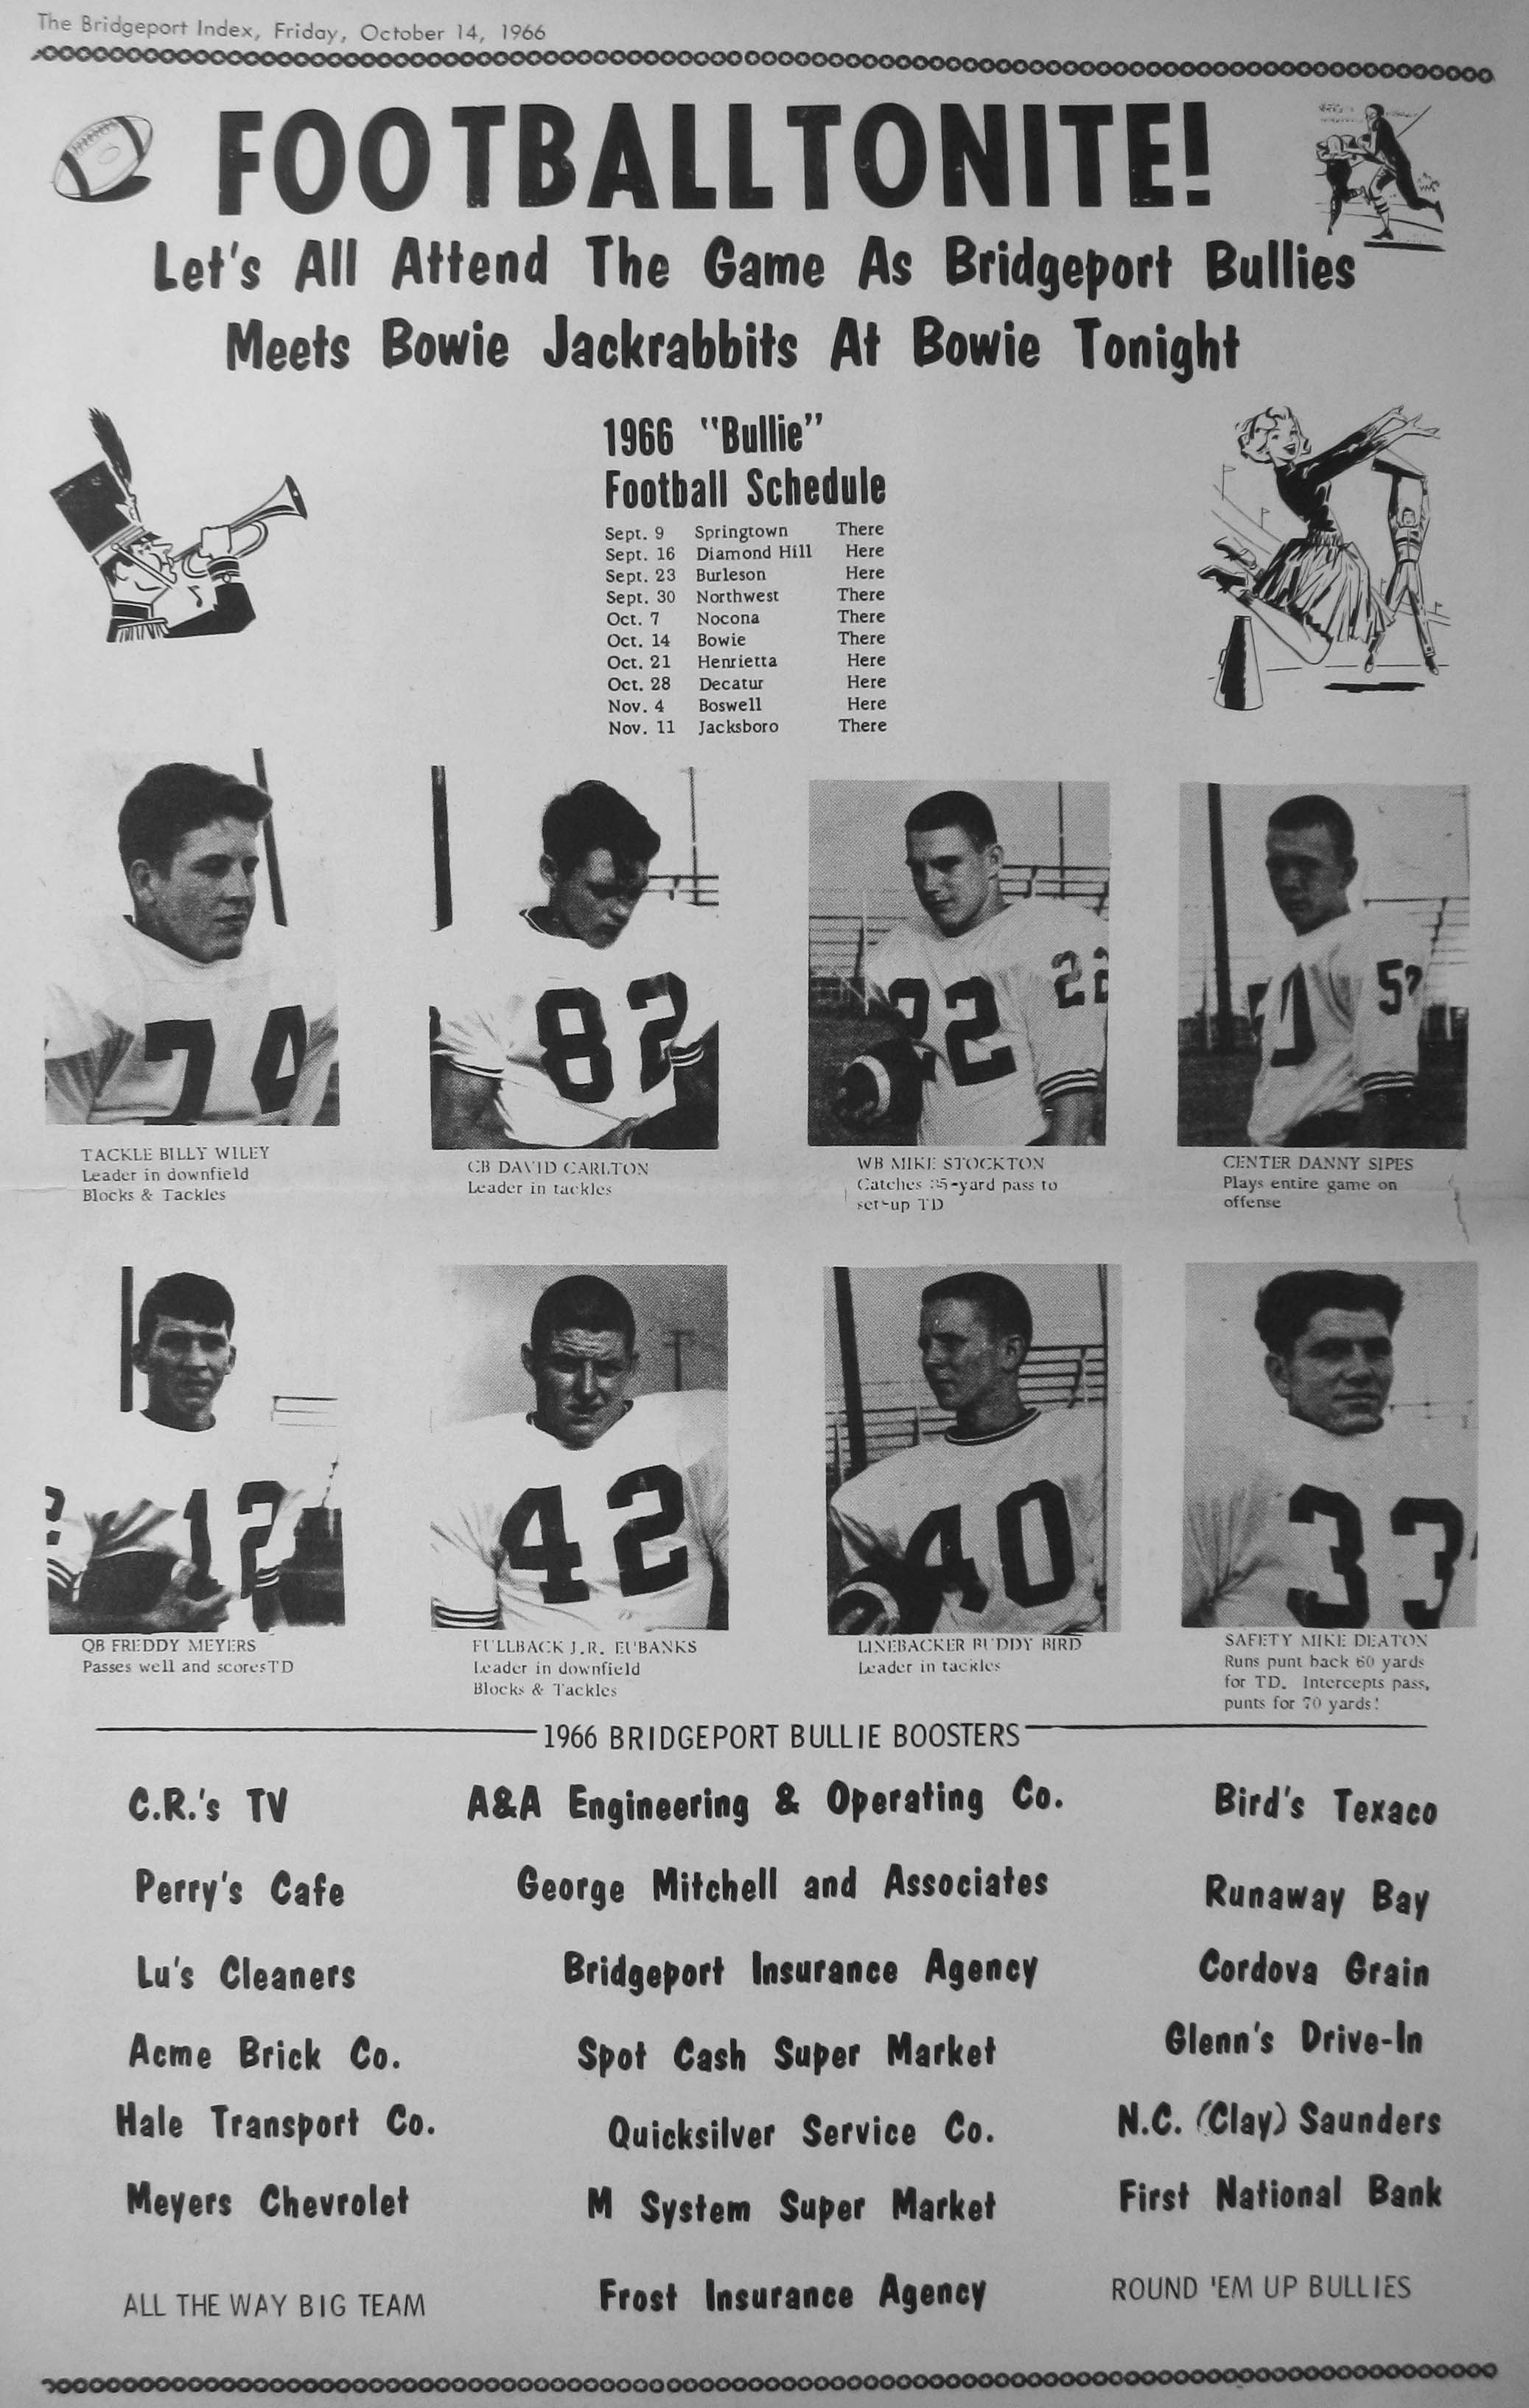 index of s from the 1966 bridgeport index newspaper miles clarence picture 1966 09 30 pg16 · miles clarence picture 1966 11 18 pg07 · miller ivy picture 1966 09 09 pg10